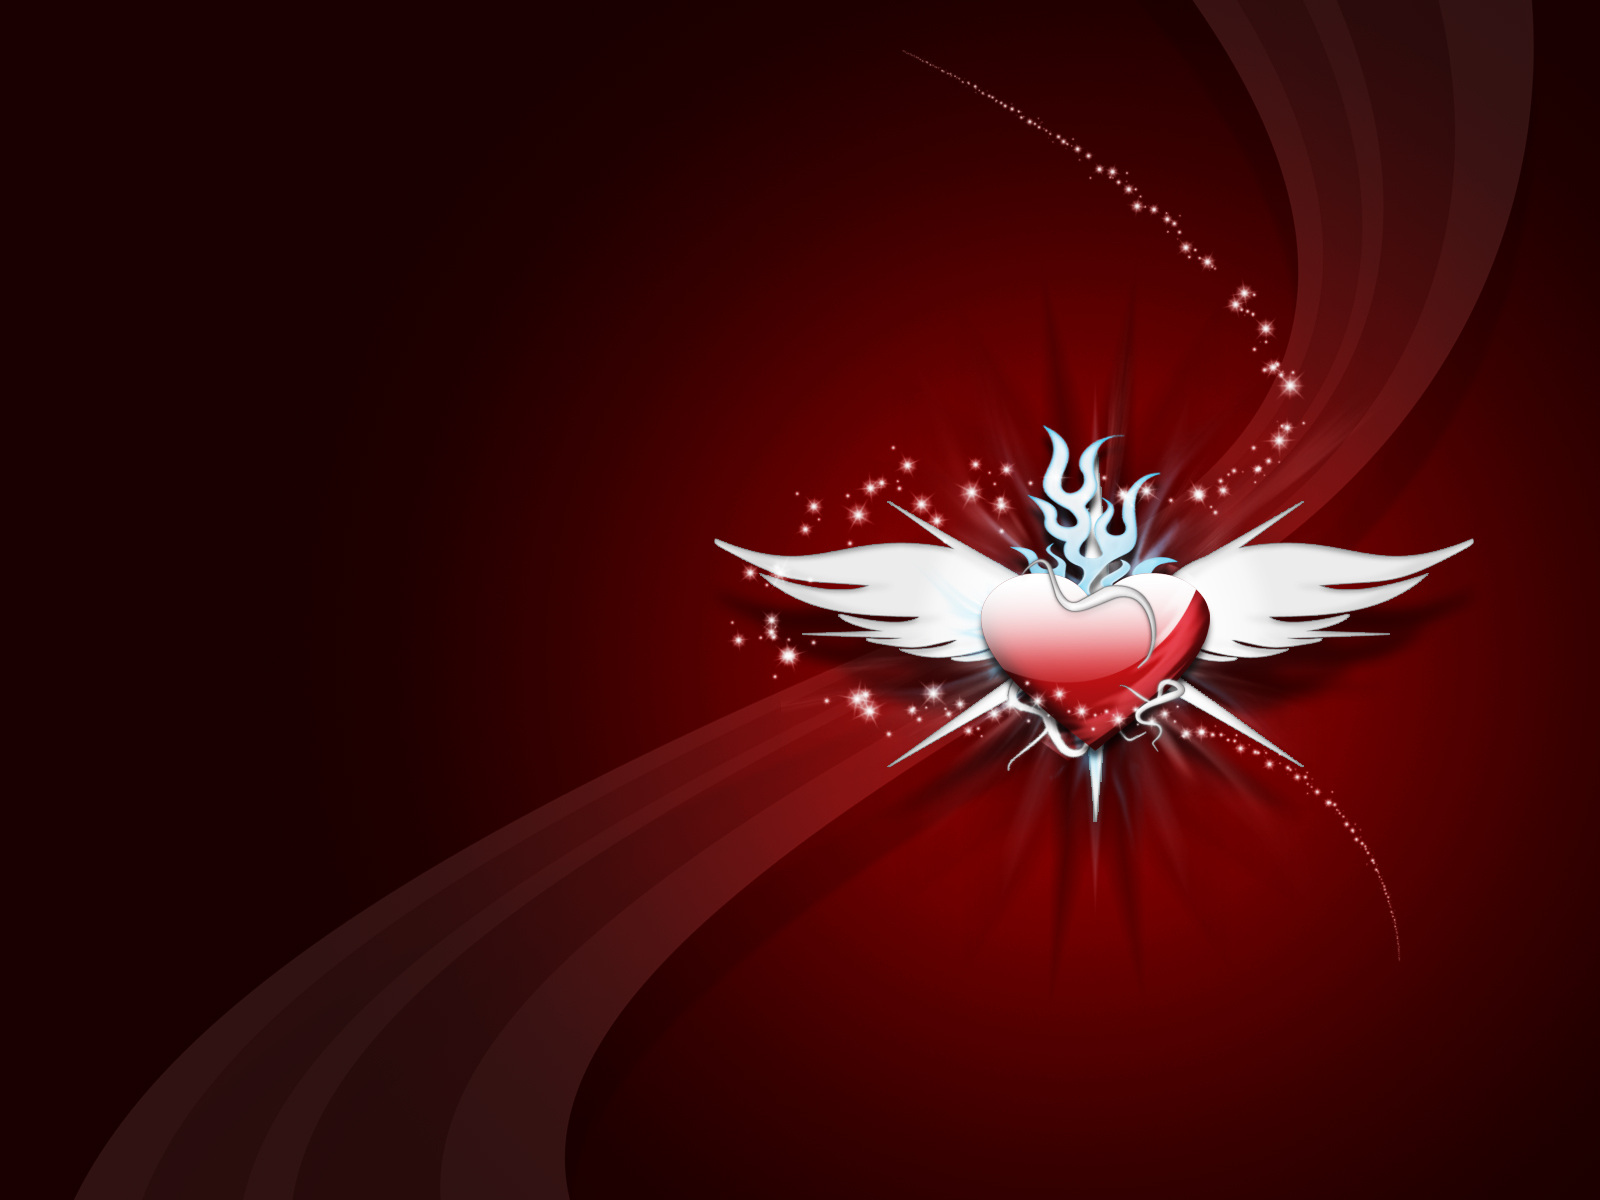 Love Images Desktop Wallpaper : Love wings wallpaper, free pc wallpaper Simple Wallpapers